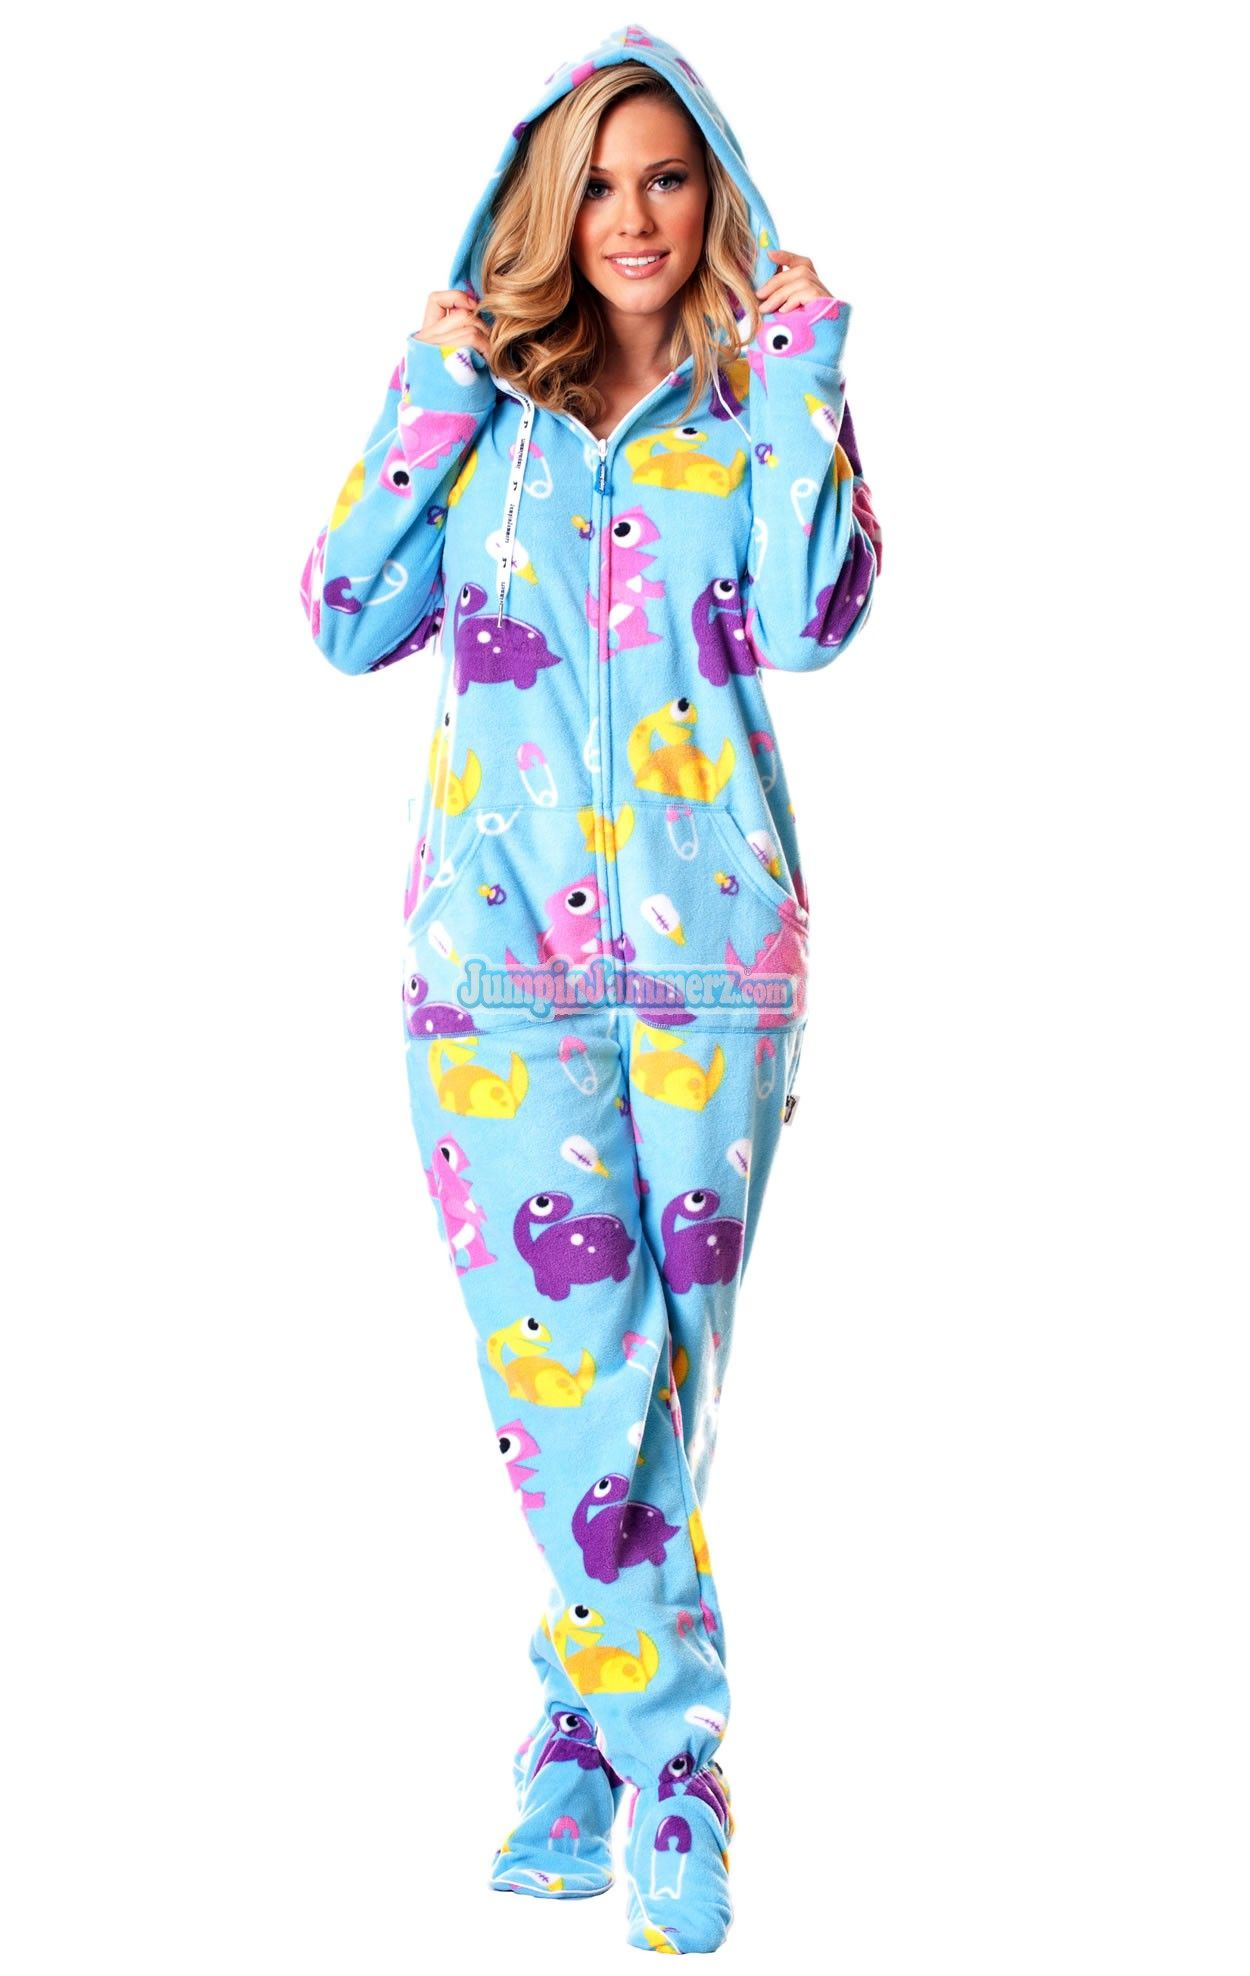 Penguins - Hooded Footed Pajamas - Pajamas Footie PJs Onesies One ...